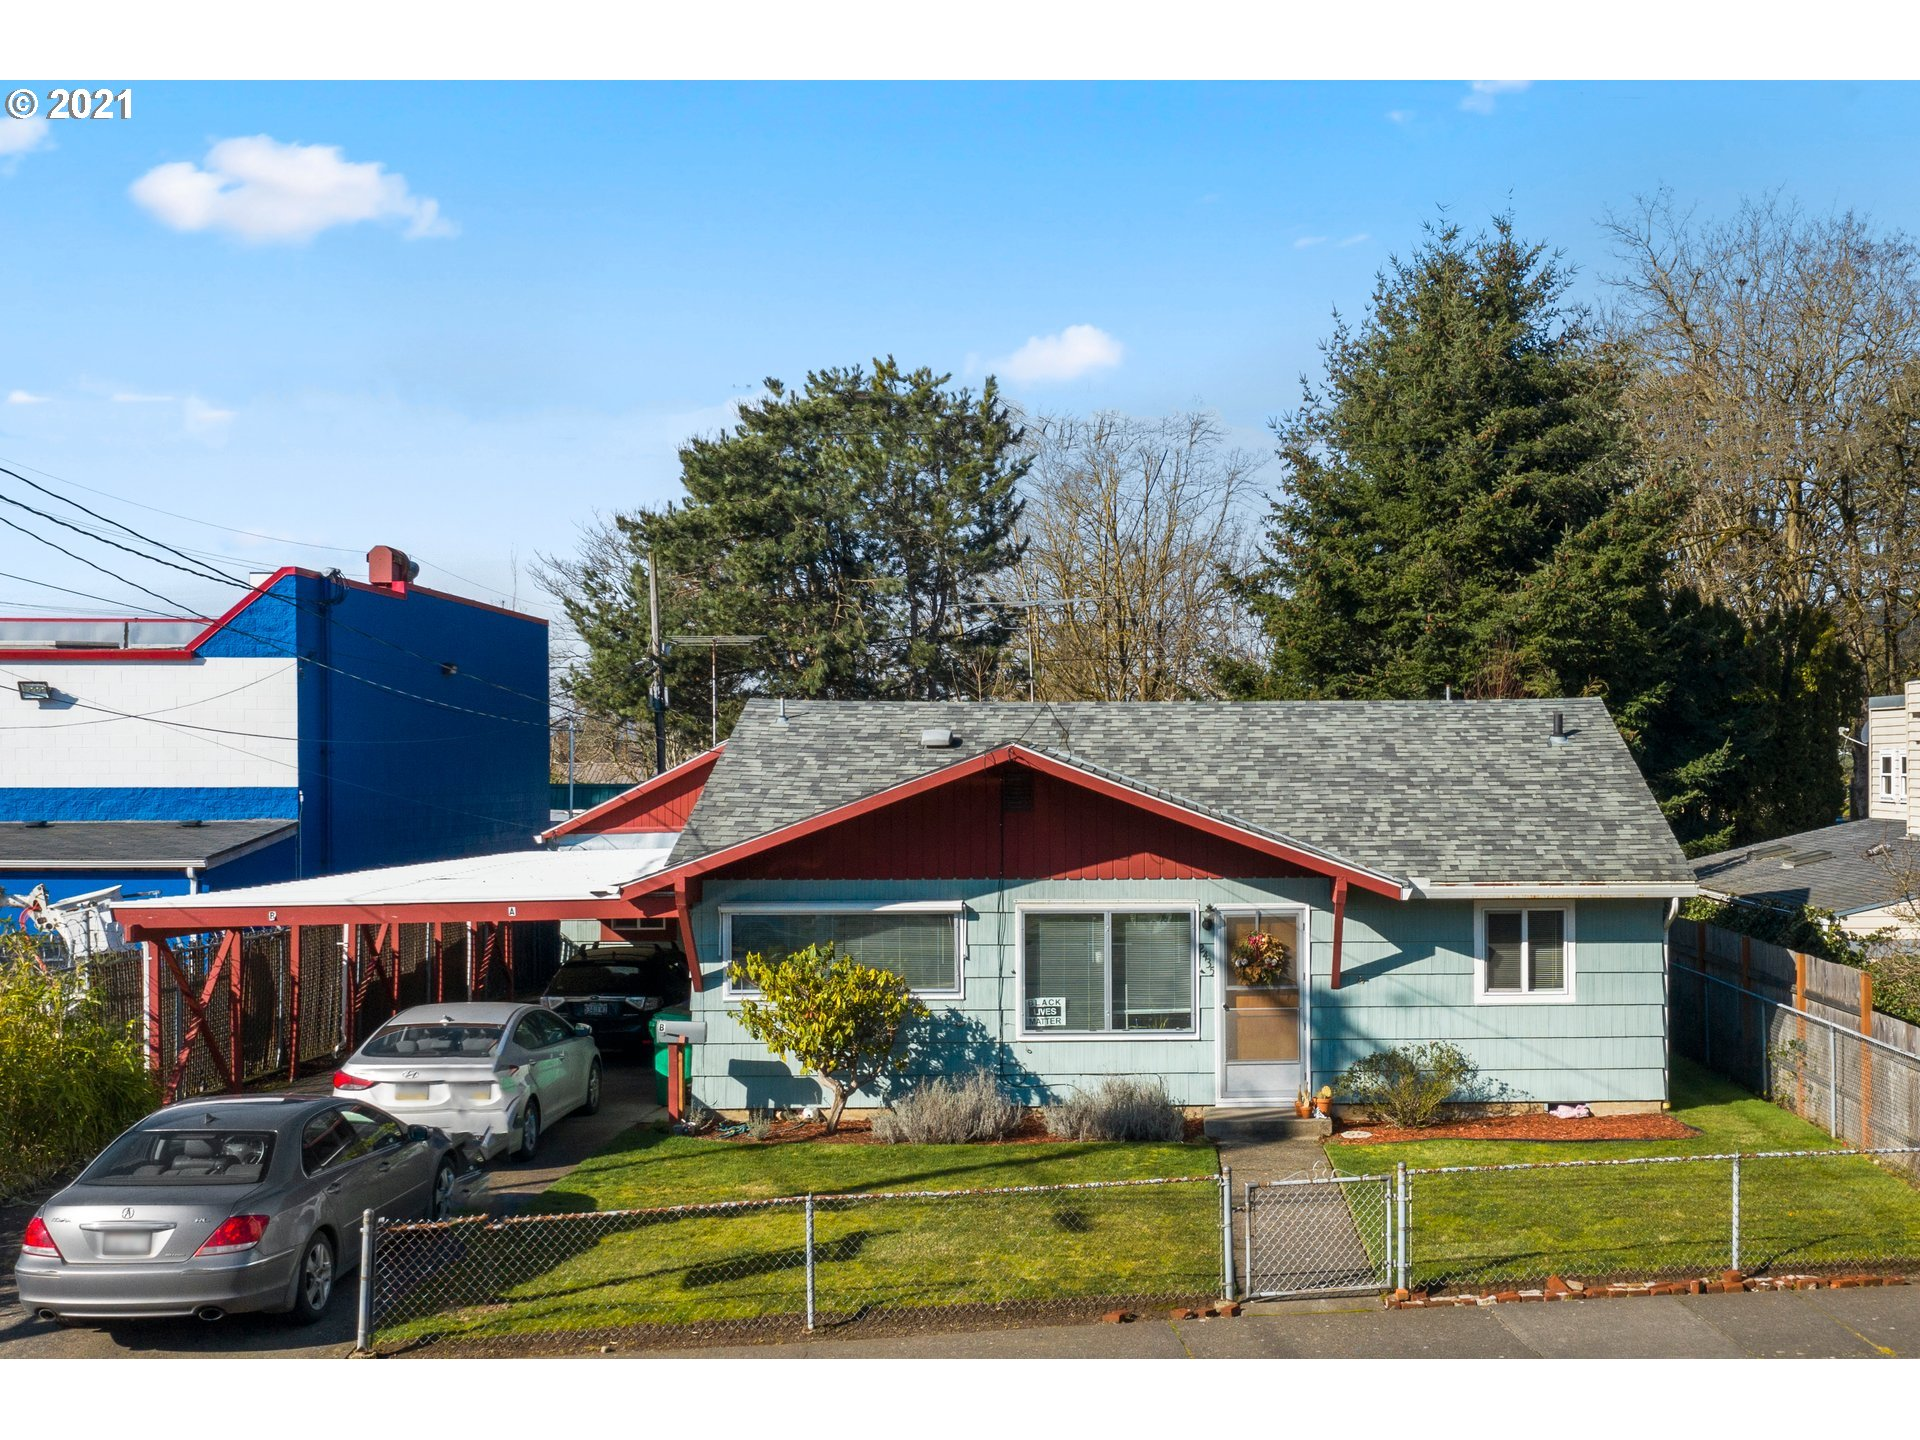 TWO FOR ONE! Two homes~One lot! 4 BR, 1 BA home And  1 BR, 1BA Second home/ADU/AirBnB. Separate addresses. Sewer & Water shared. Sep electric meters. Great investment property. Home was remodeled 2016 incl new gas furnace. ADU was remod/fully permitted late 2016 including electrical upgrade. Hardwood floors; Granite;Stainless Steel appliances; Milgard Windows, Washer/Dryer, Navien All time Hot Water, Full Bath. So CUTE! Live in one and rent the other? In-law house? AirBnB? You choose!